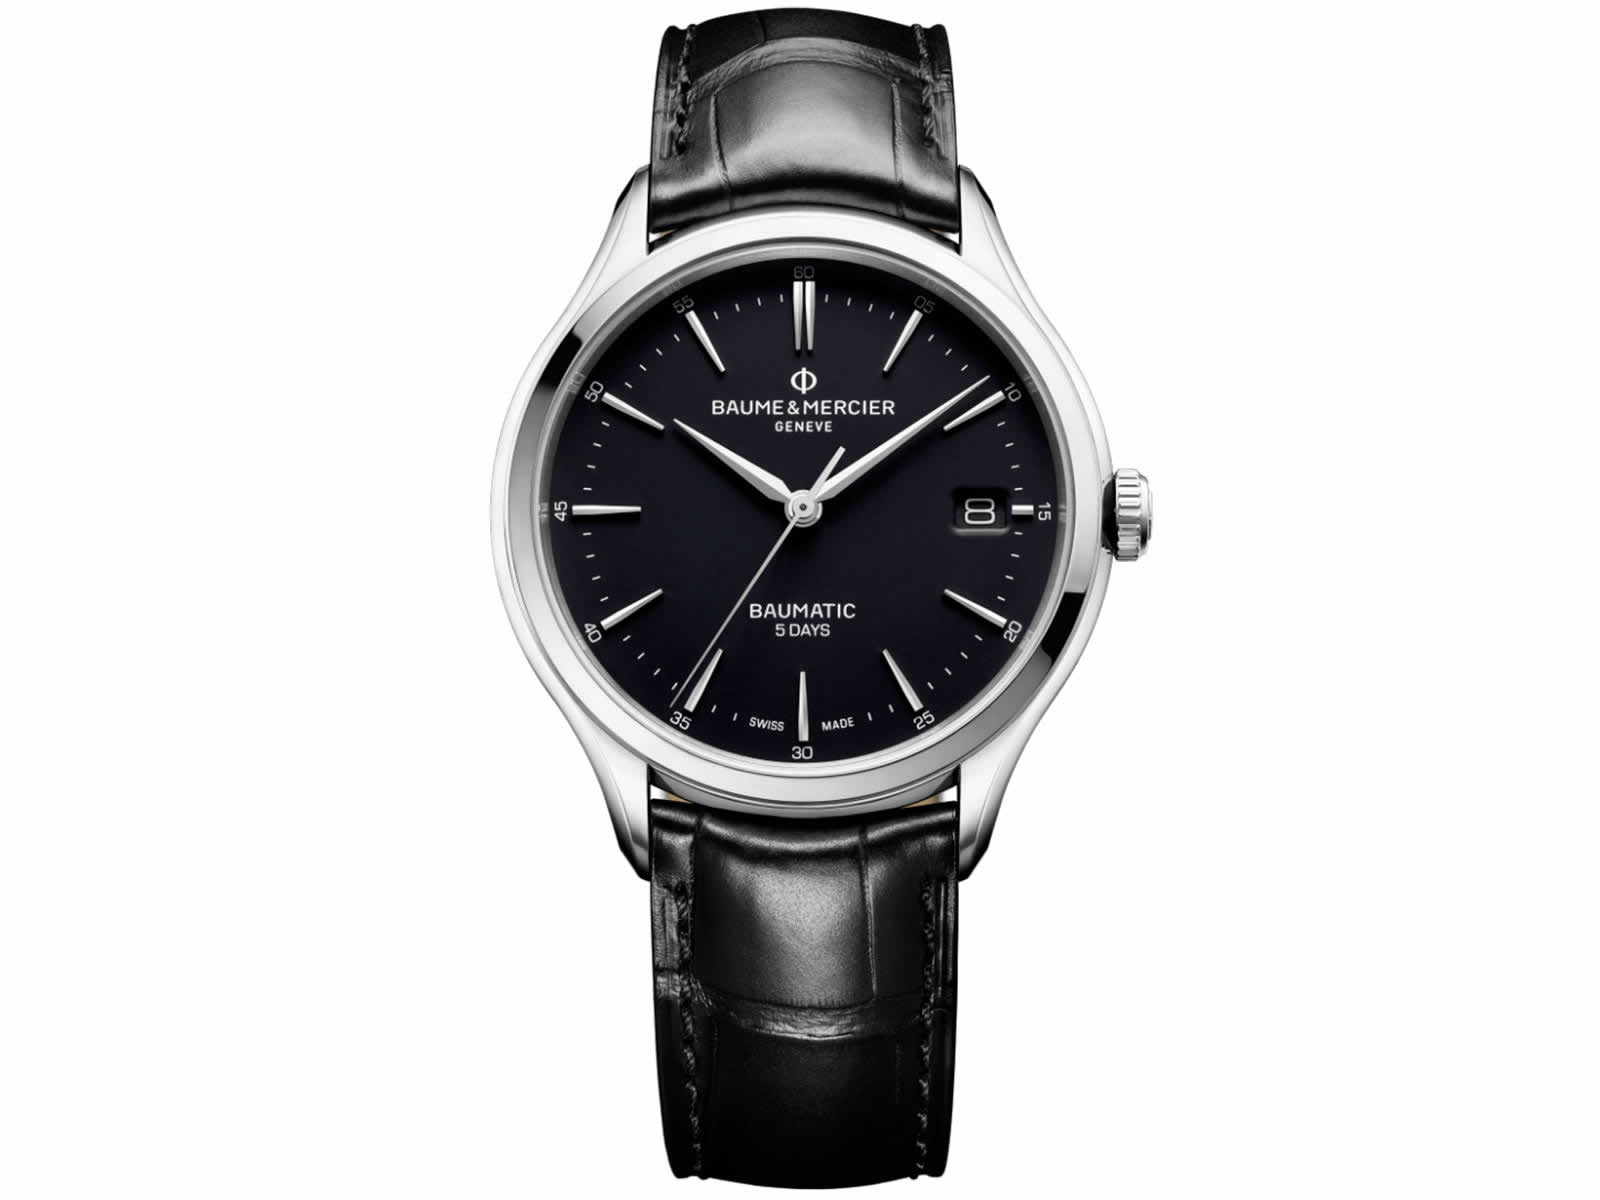 10399-Baume-Mercier-Clifton-Baumatic-Collection-Sihh2018-Black-Front.jpg